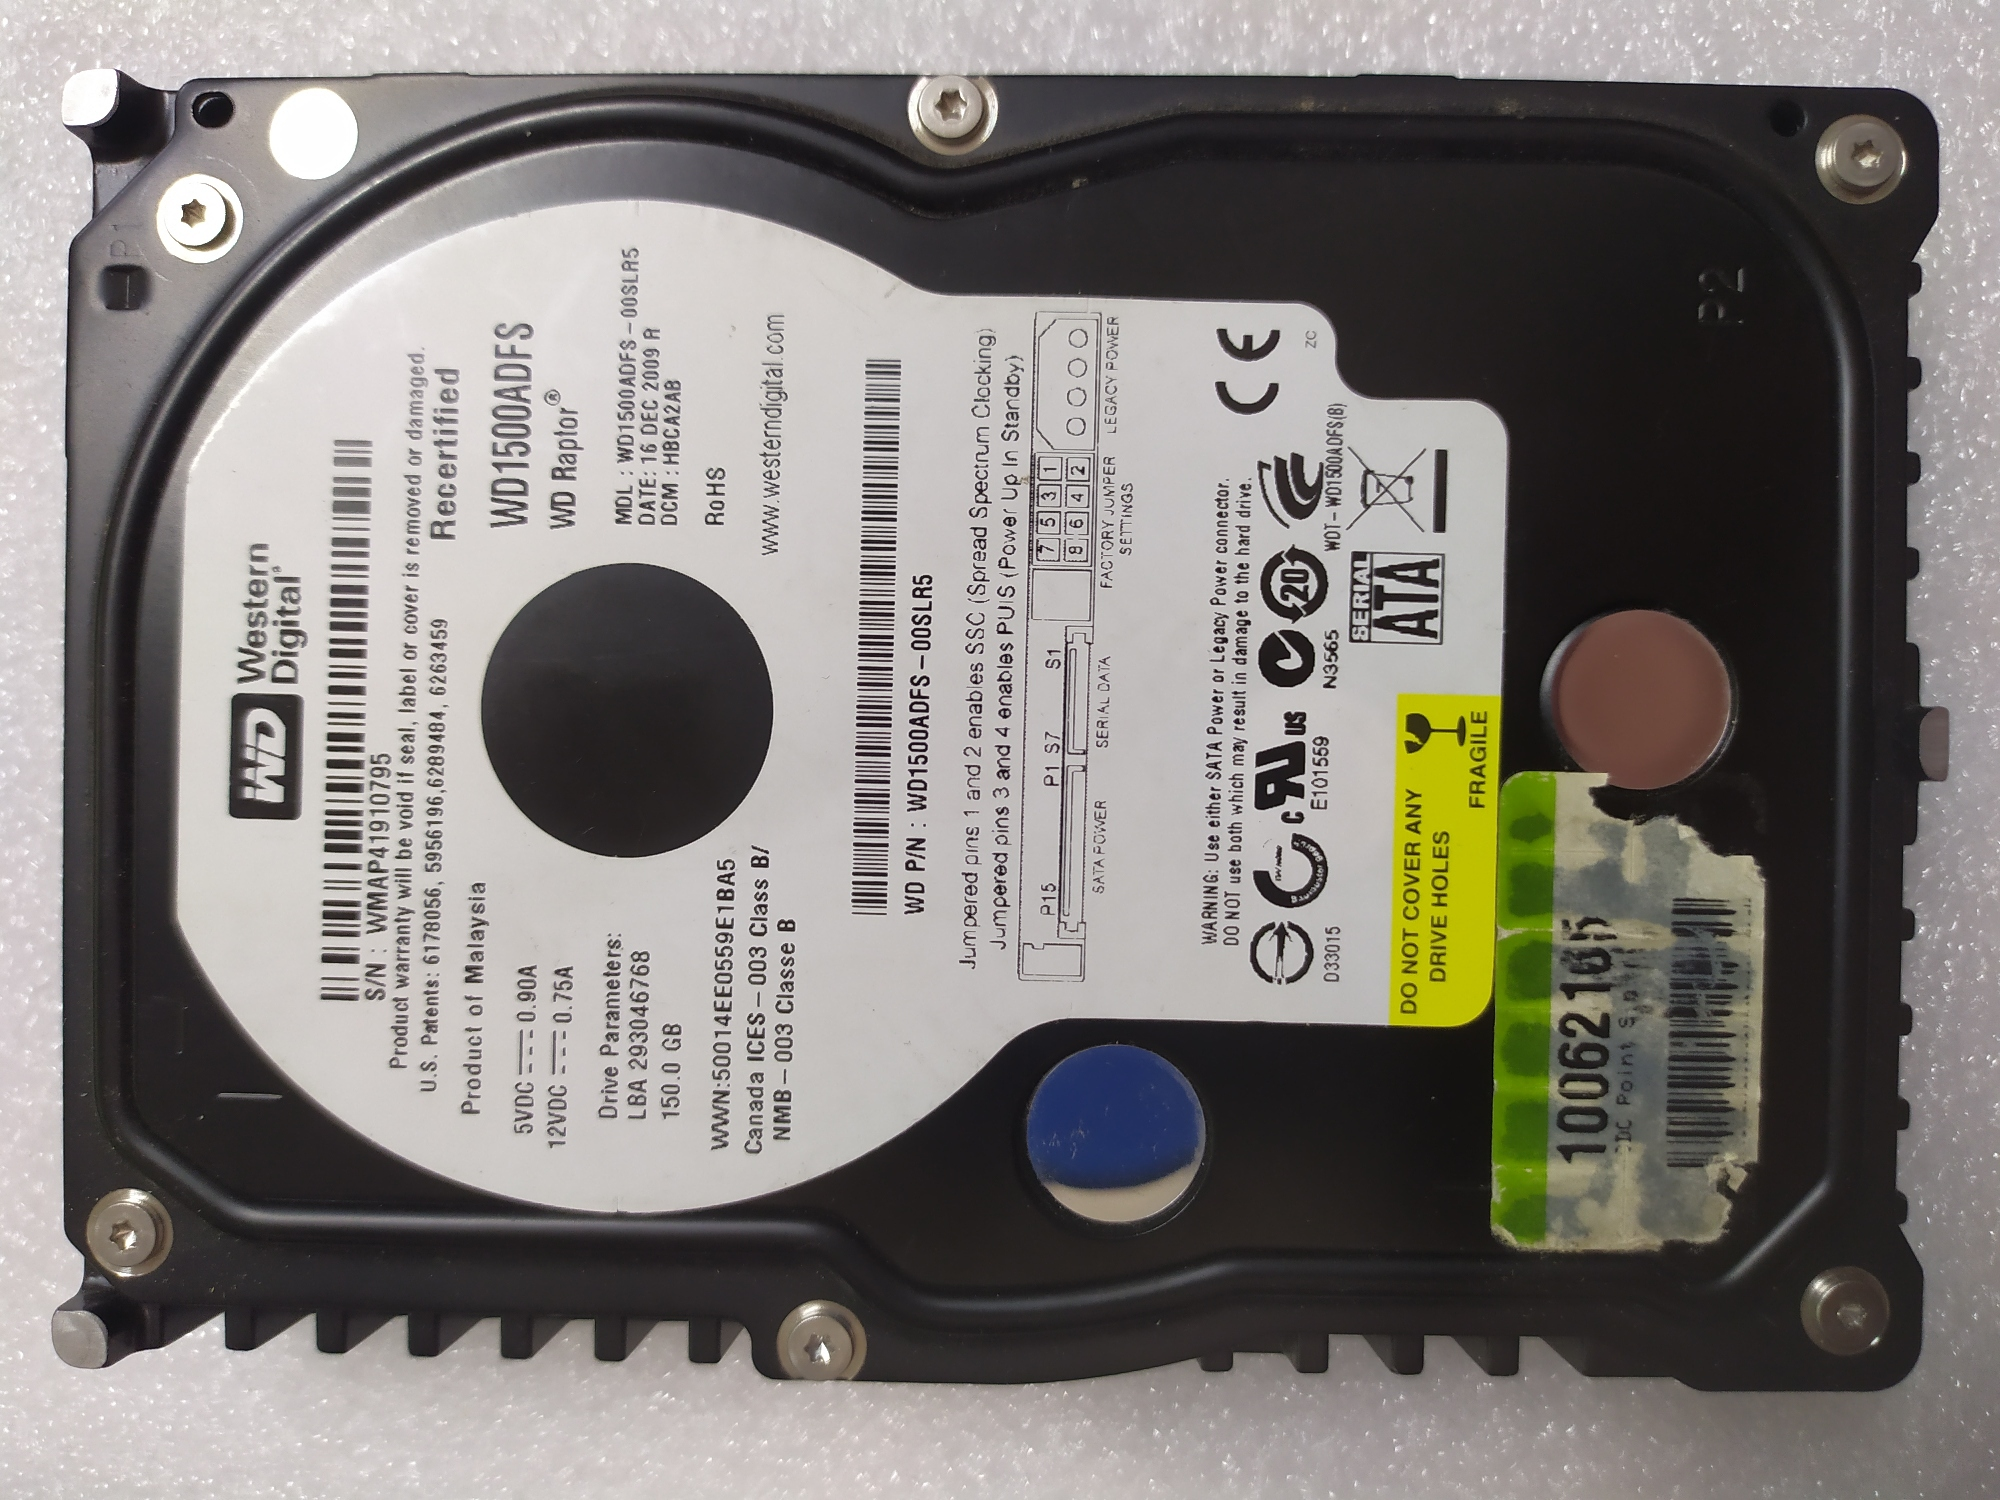 "WD1500ADFS WESTERN DIGITAL150 Gb SATA Western Digital 3.5"" 10000"